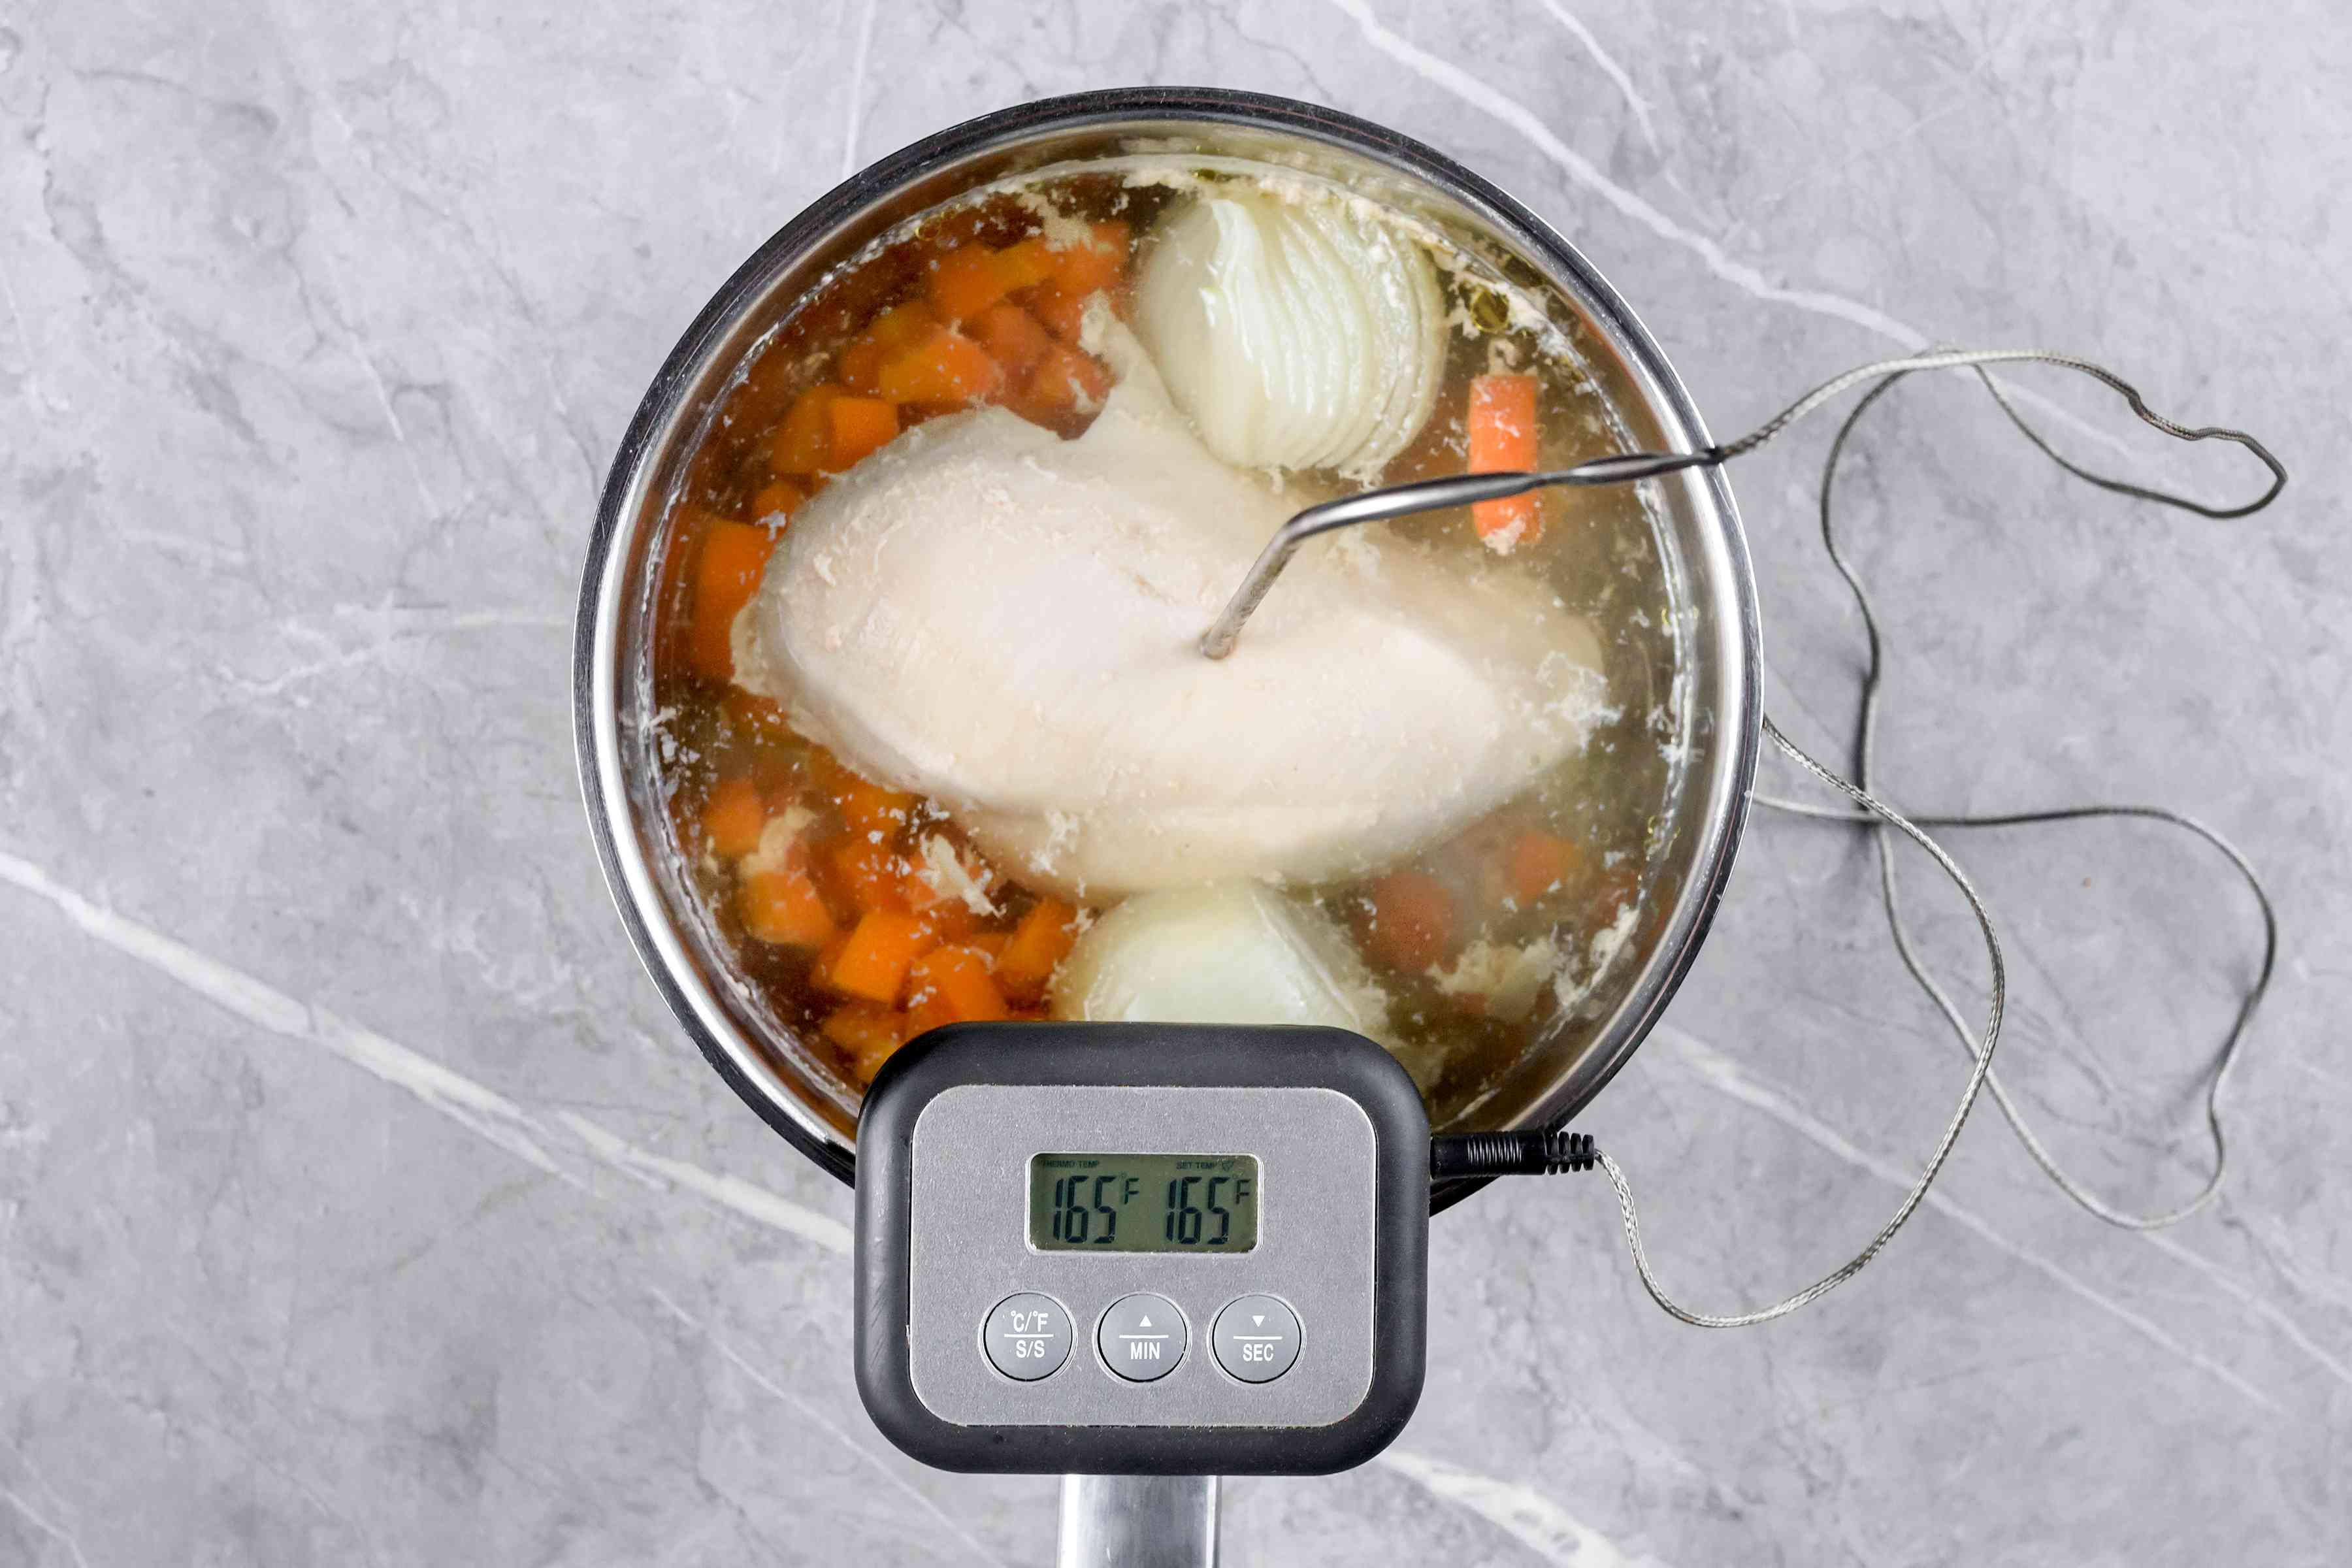 Check the poached chicken breasts with a food thermometer